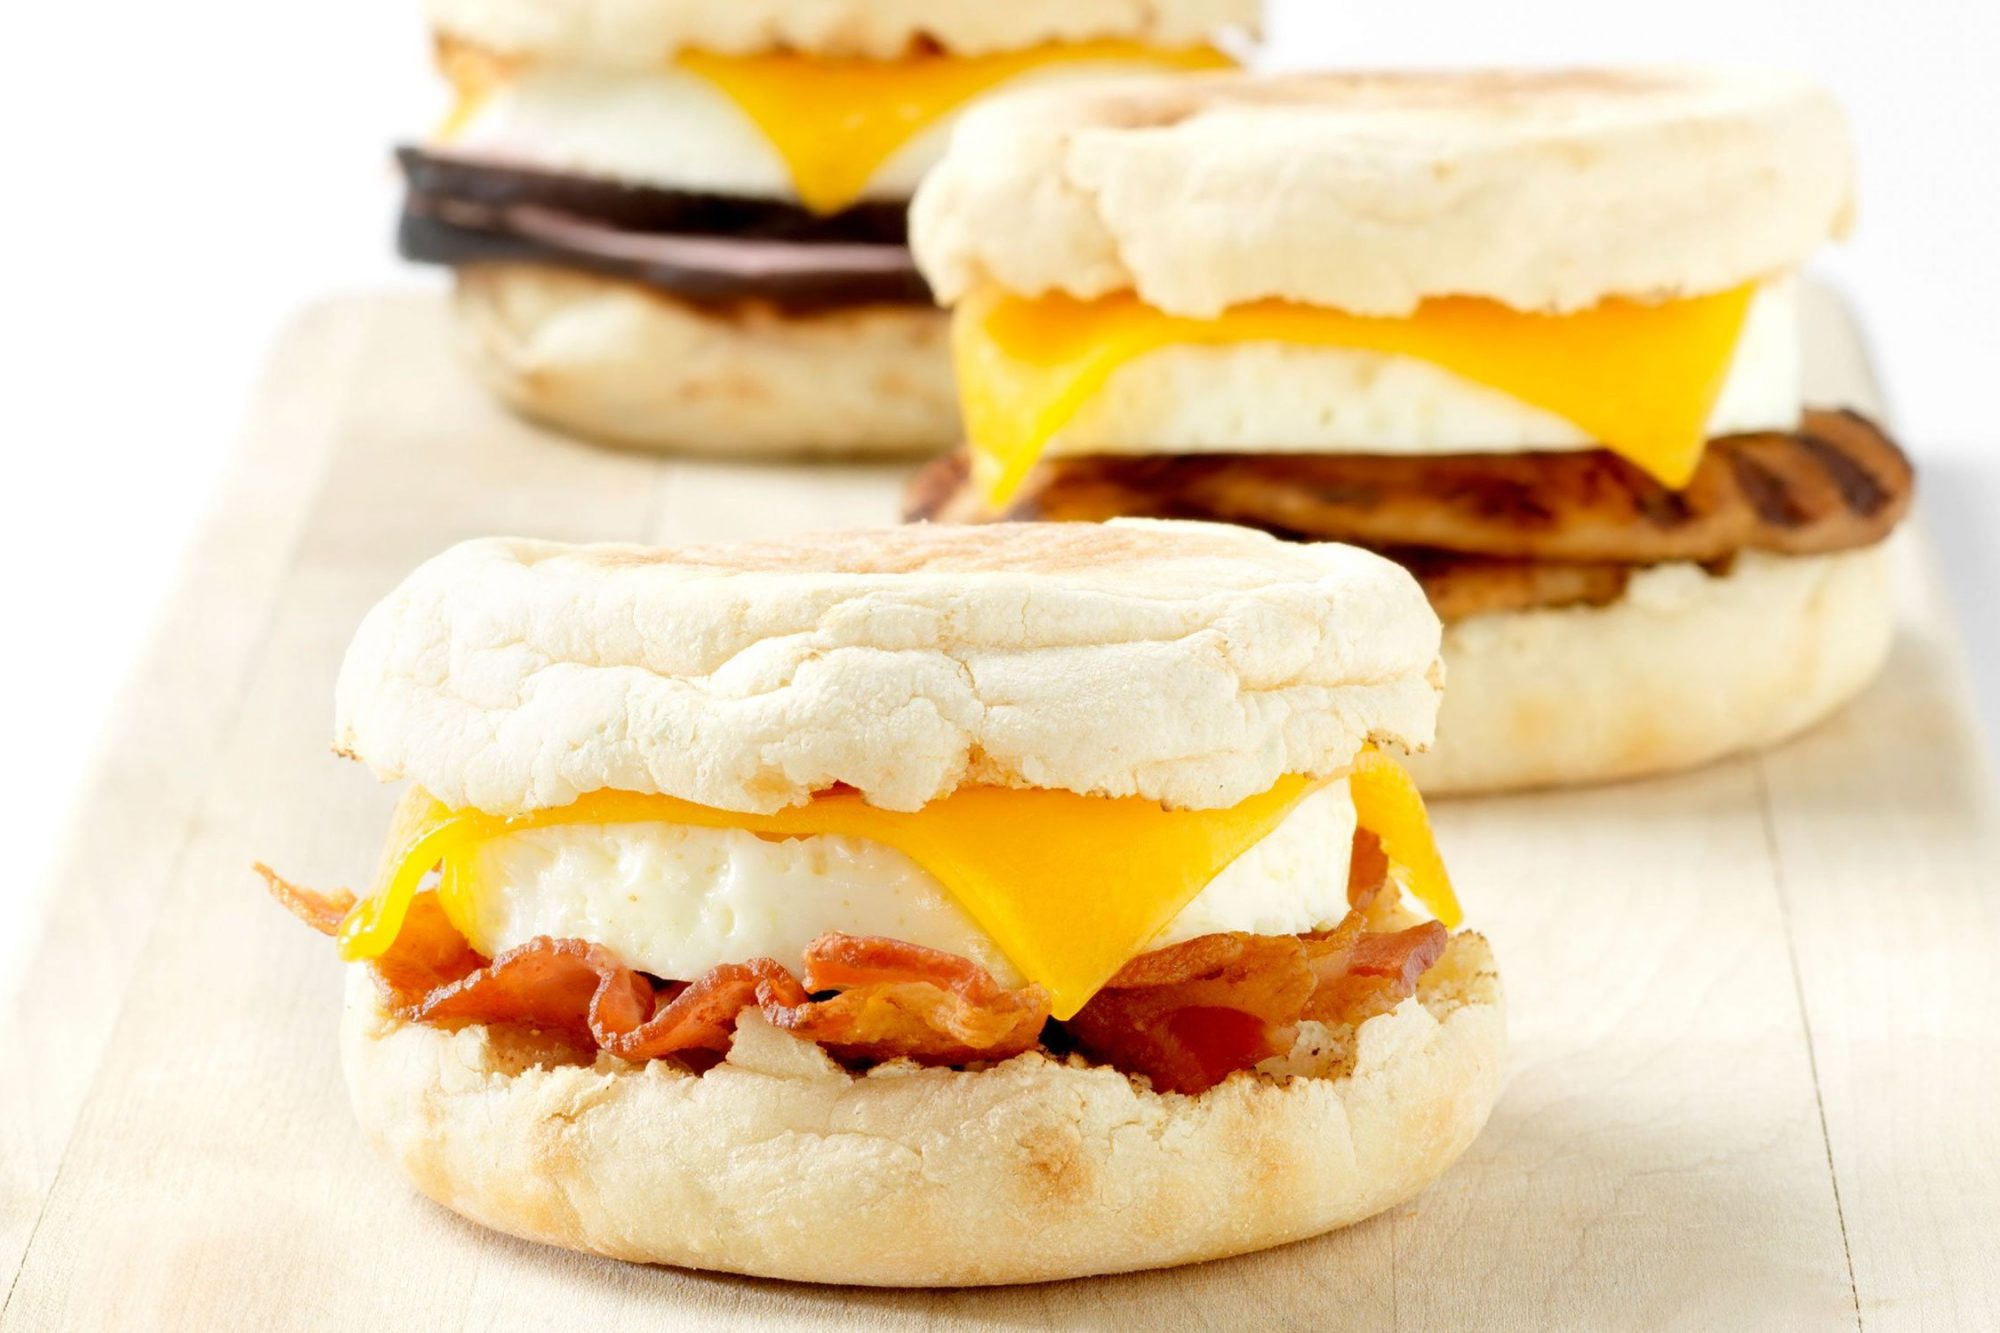 EC: DIY Microwave Egg Sandwiches Will Save You Time and Money